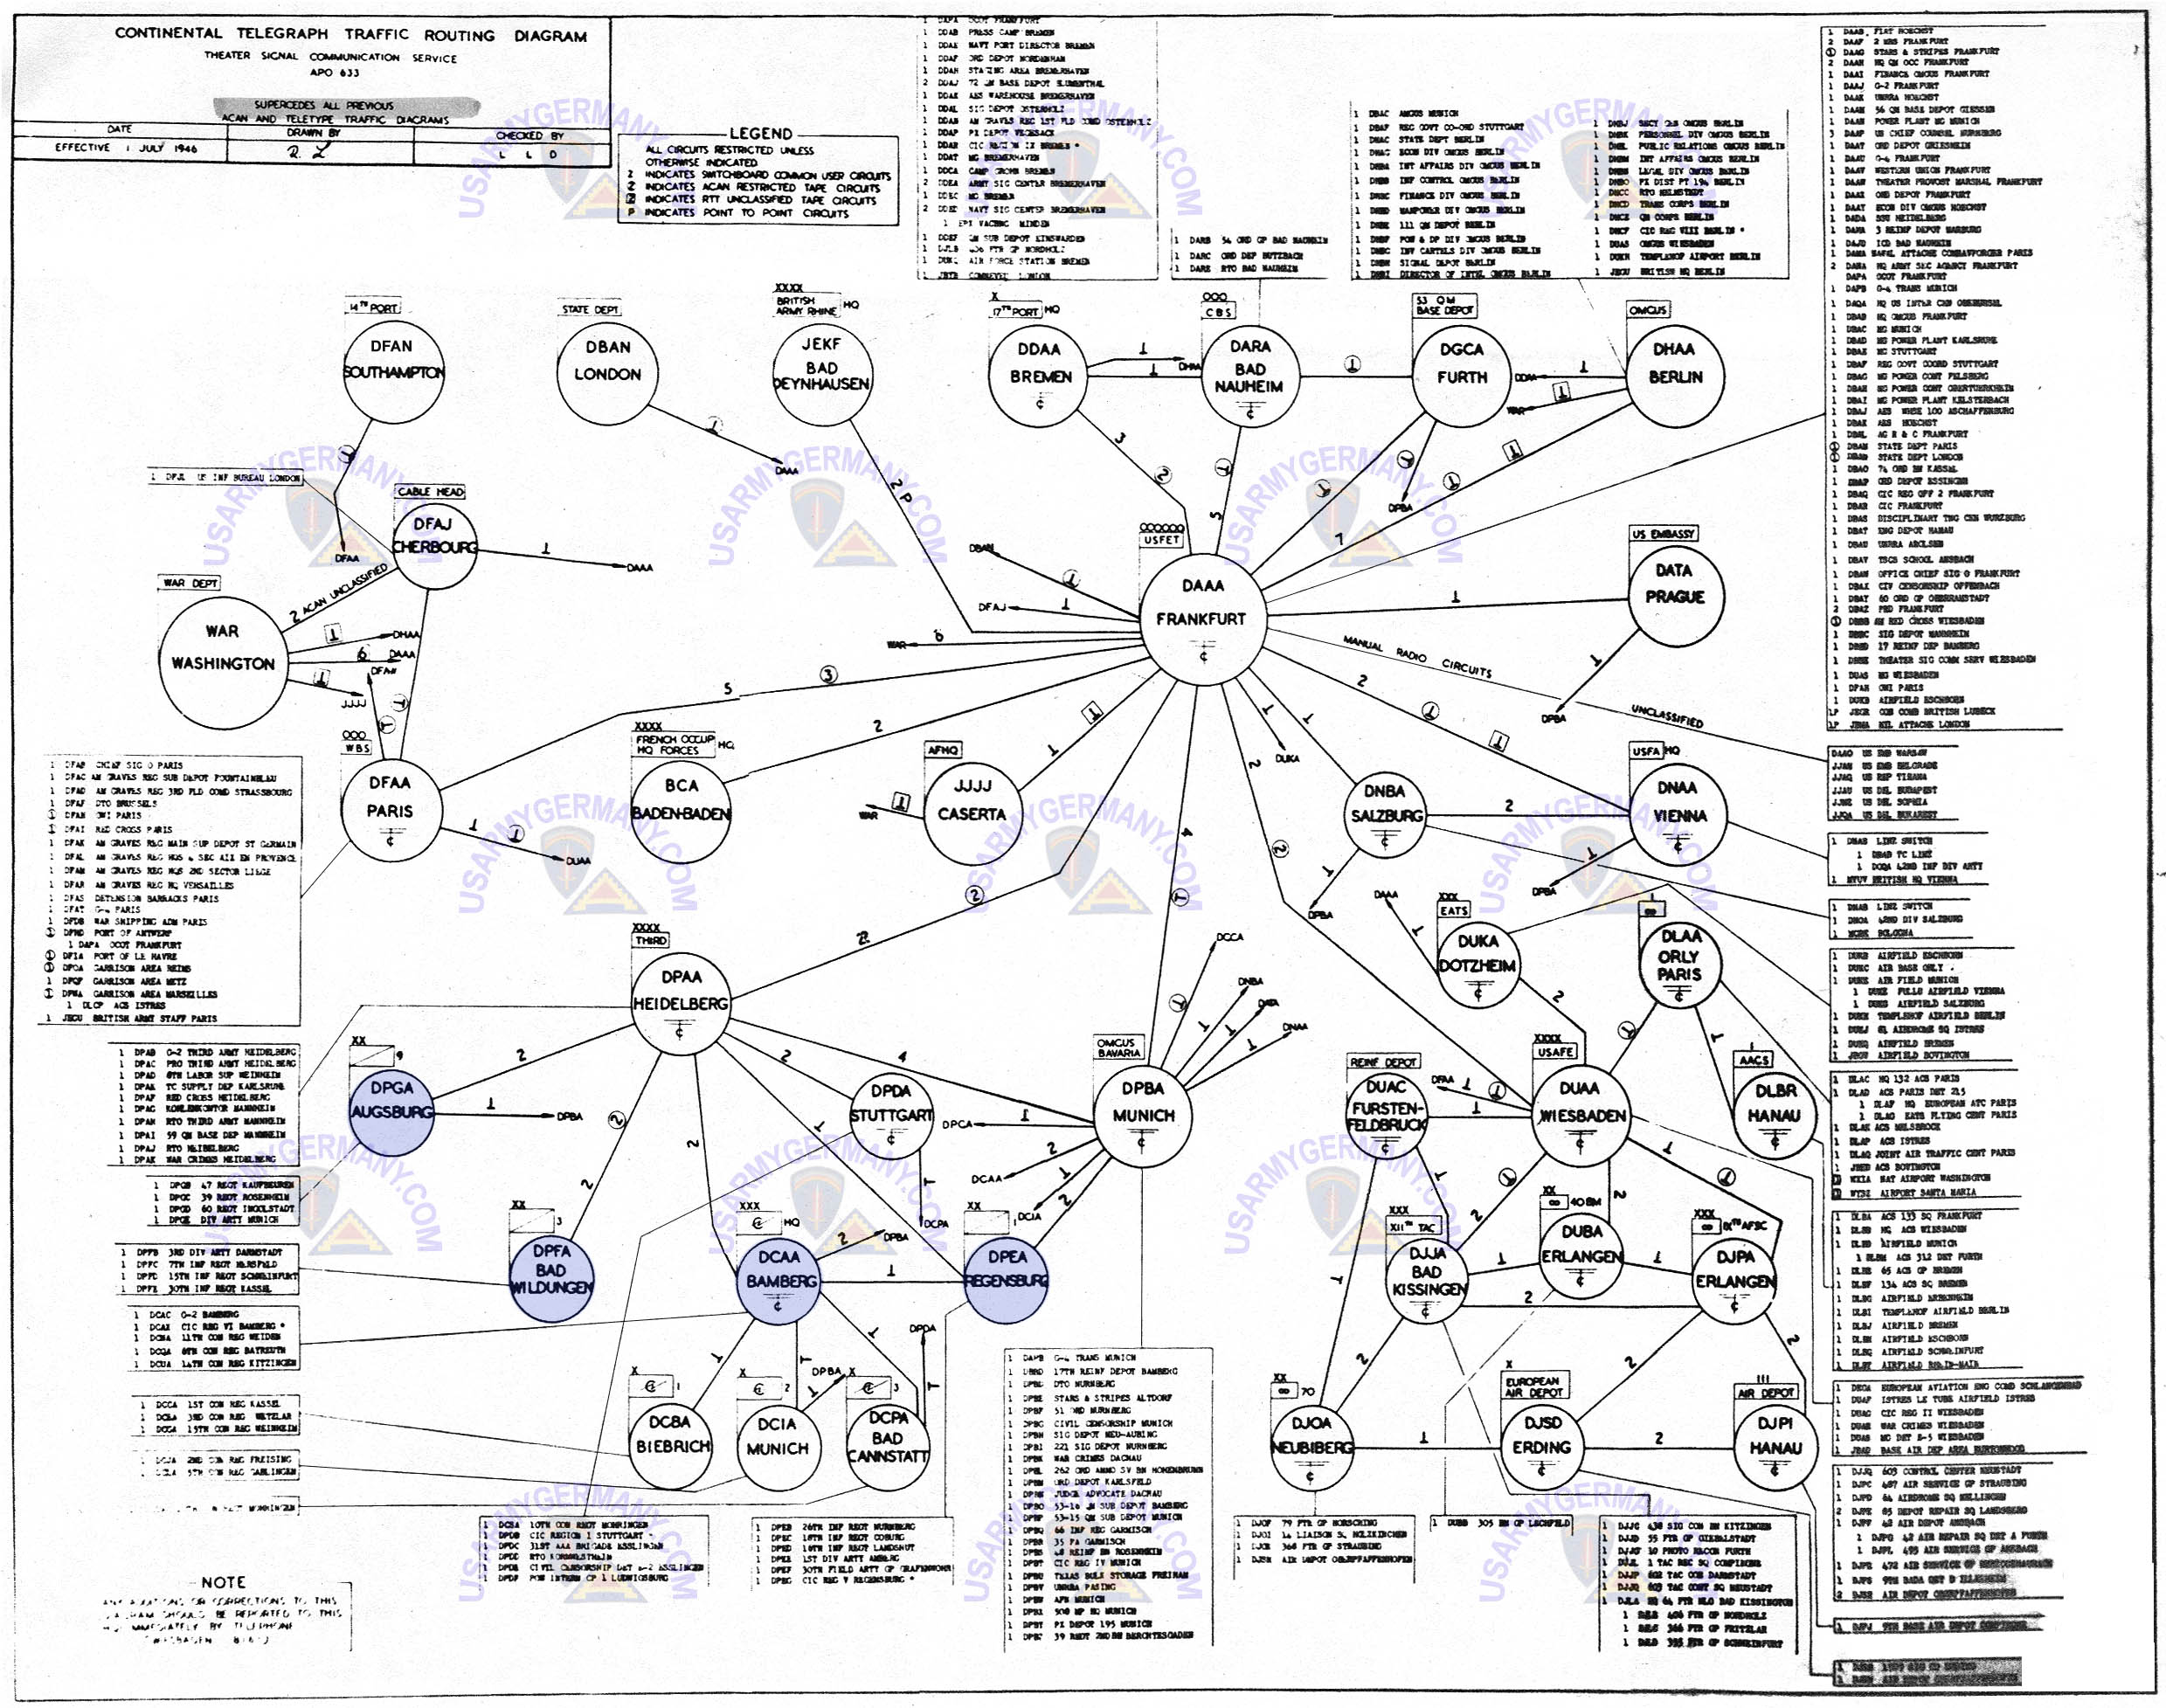 wiring diagram home computer network wiring image wiring diagram for home computer network wiring discover your on wiring diagram home computer network